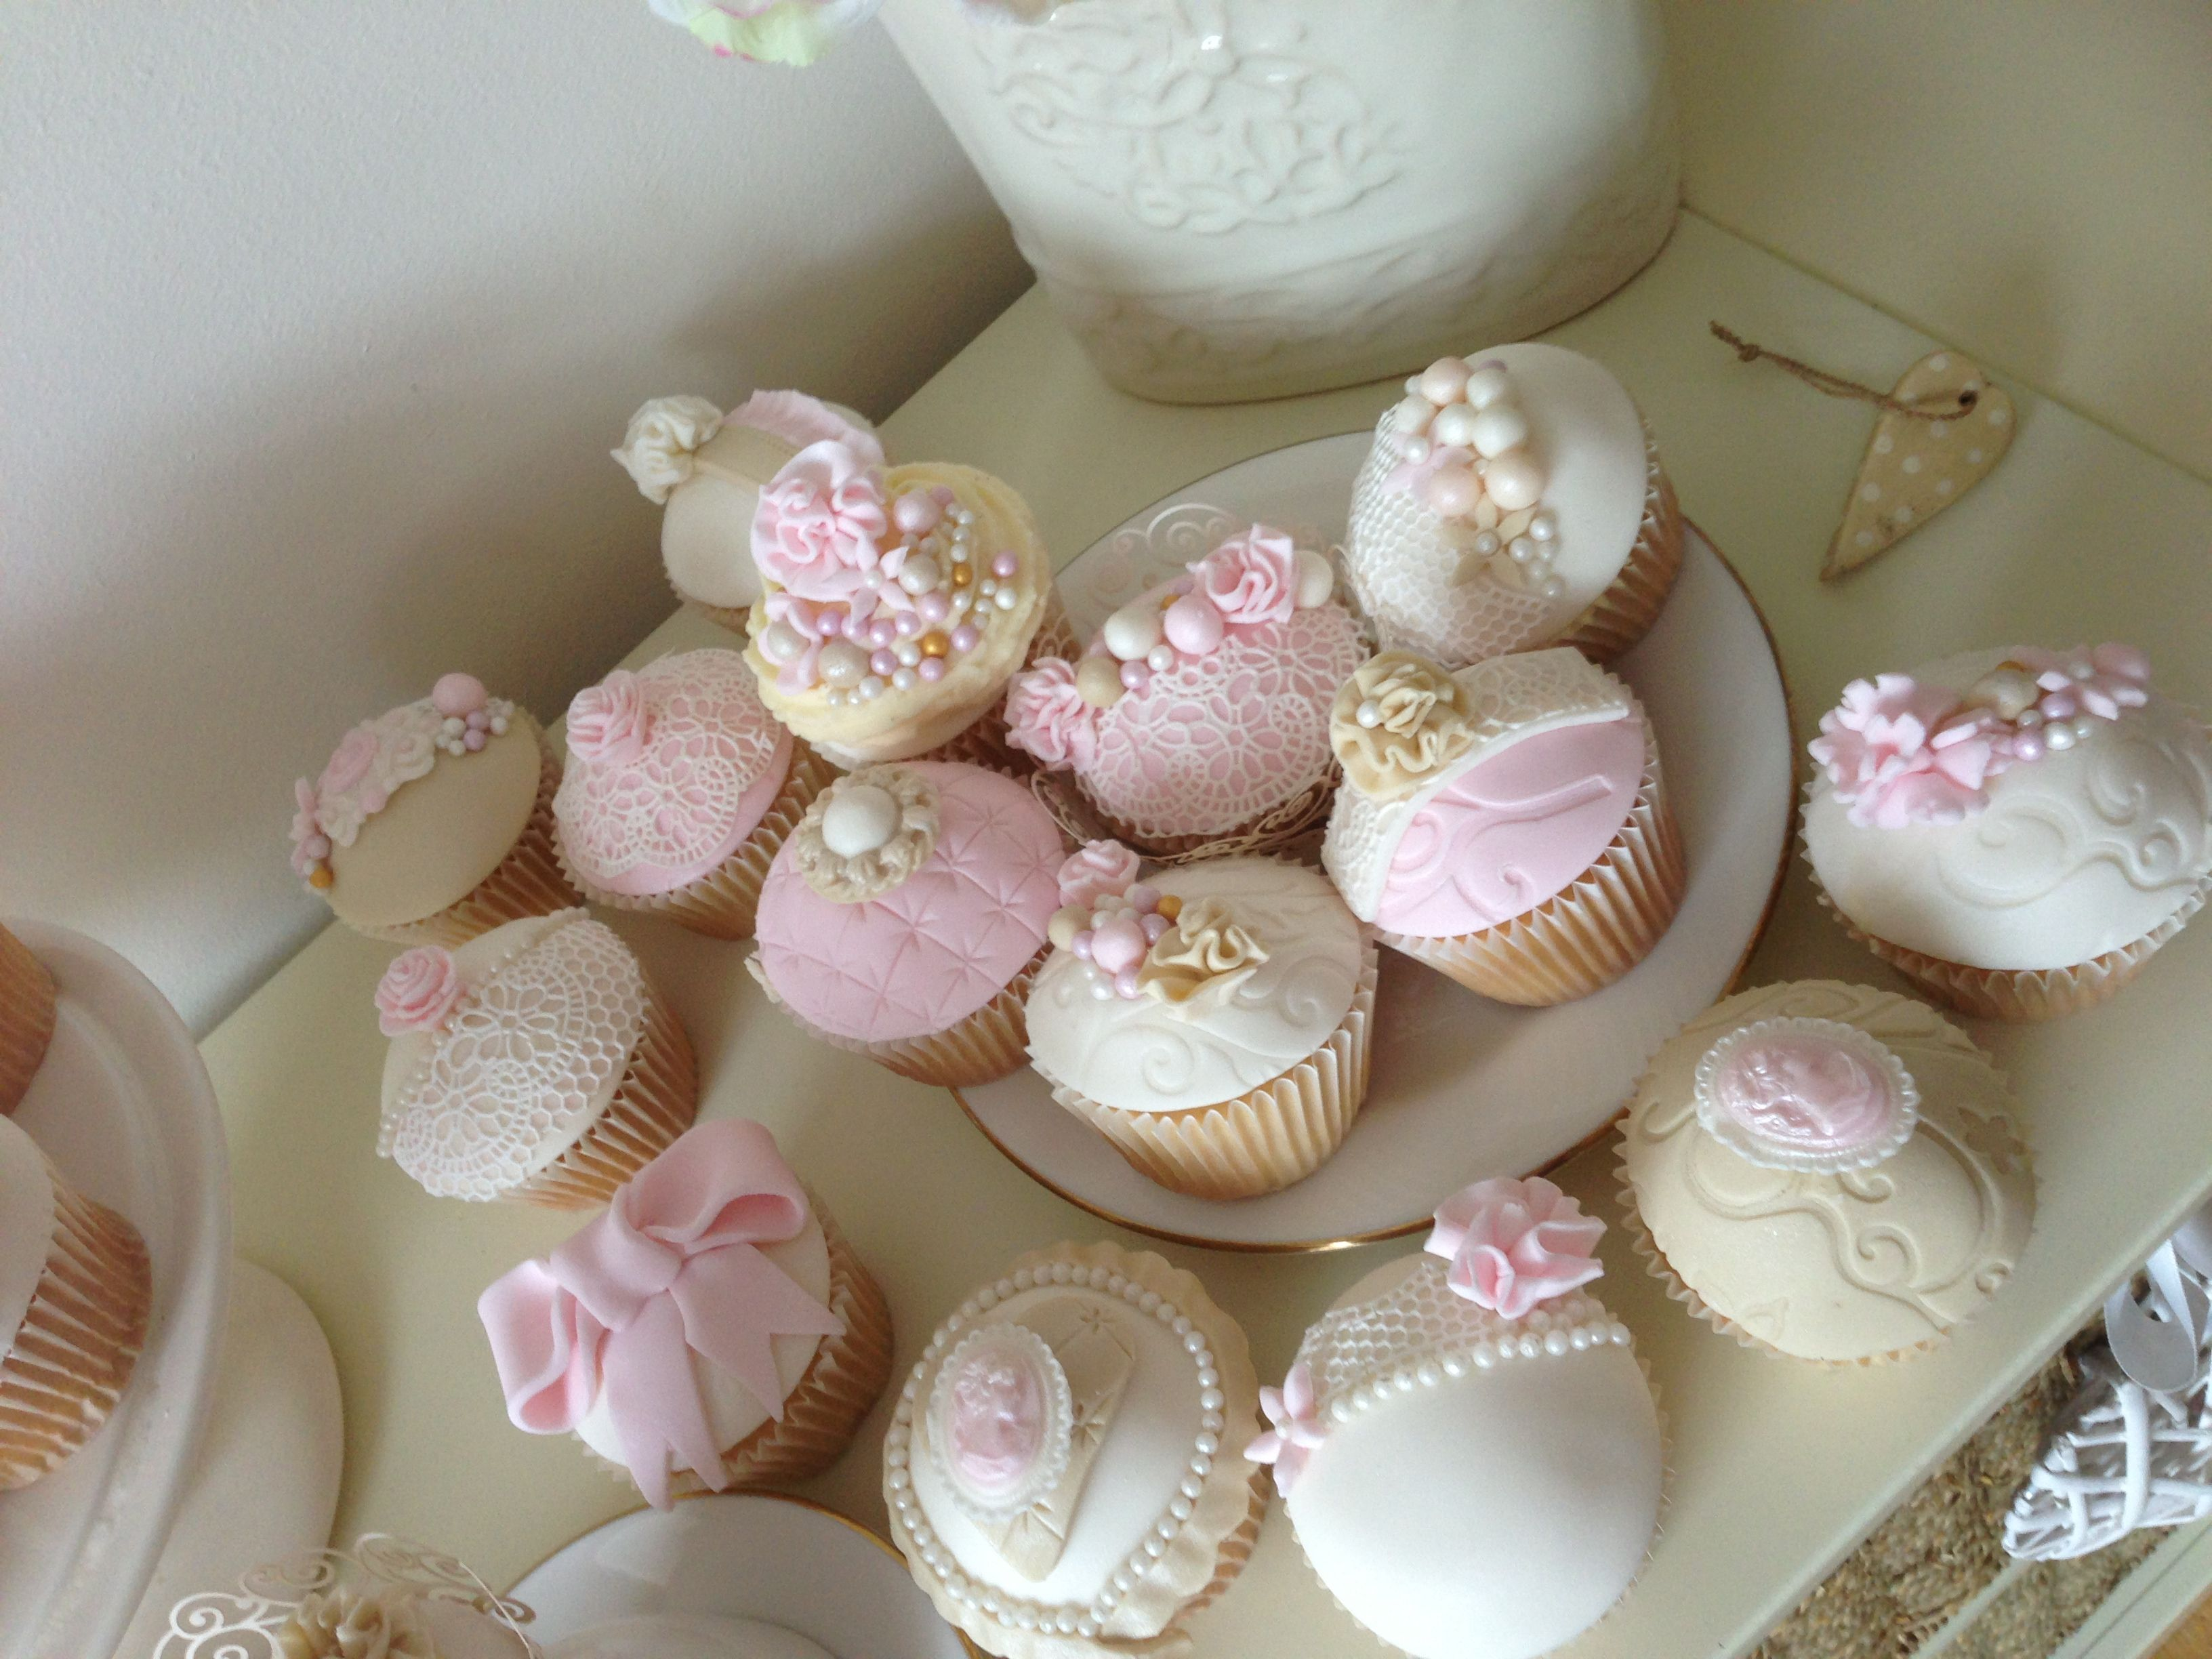 Cappuccino Eggnog Angel Food Cupcakes Cakes 2 Picture